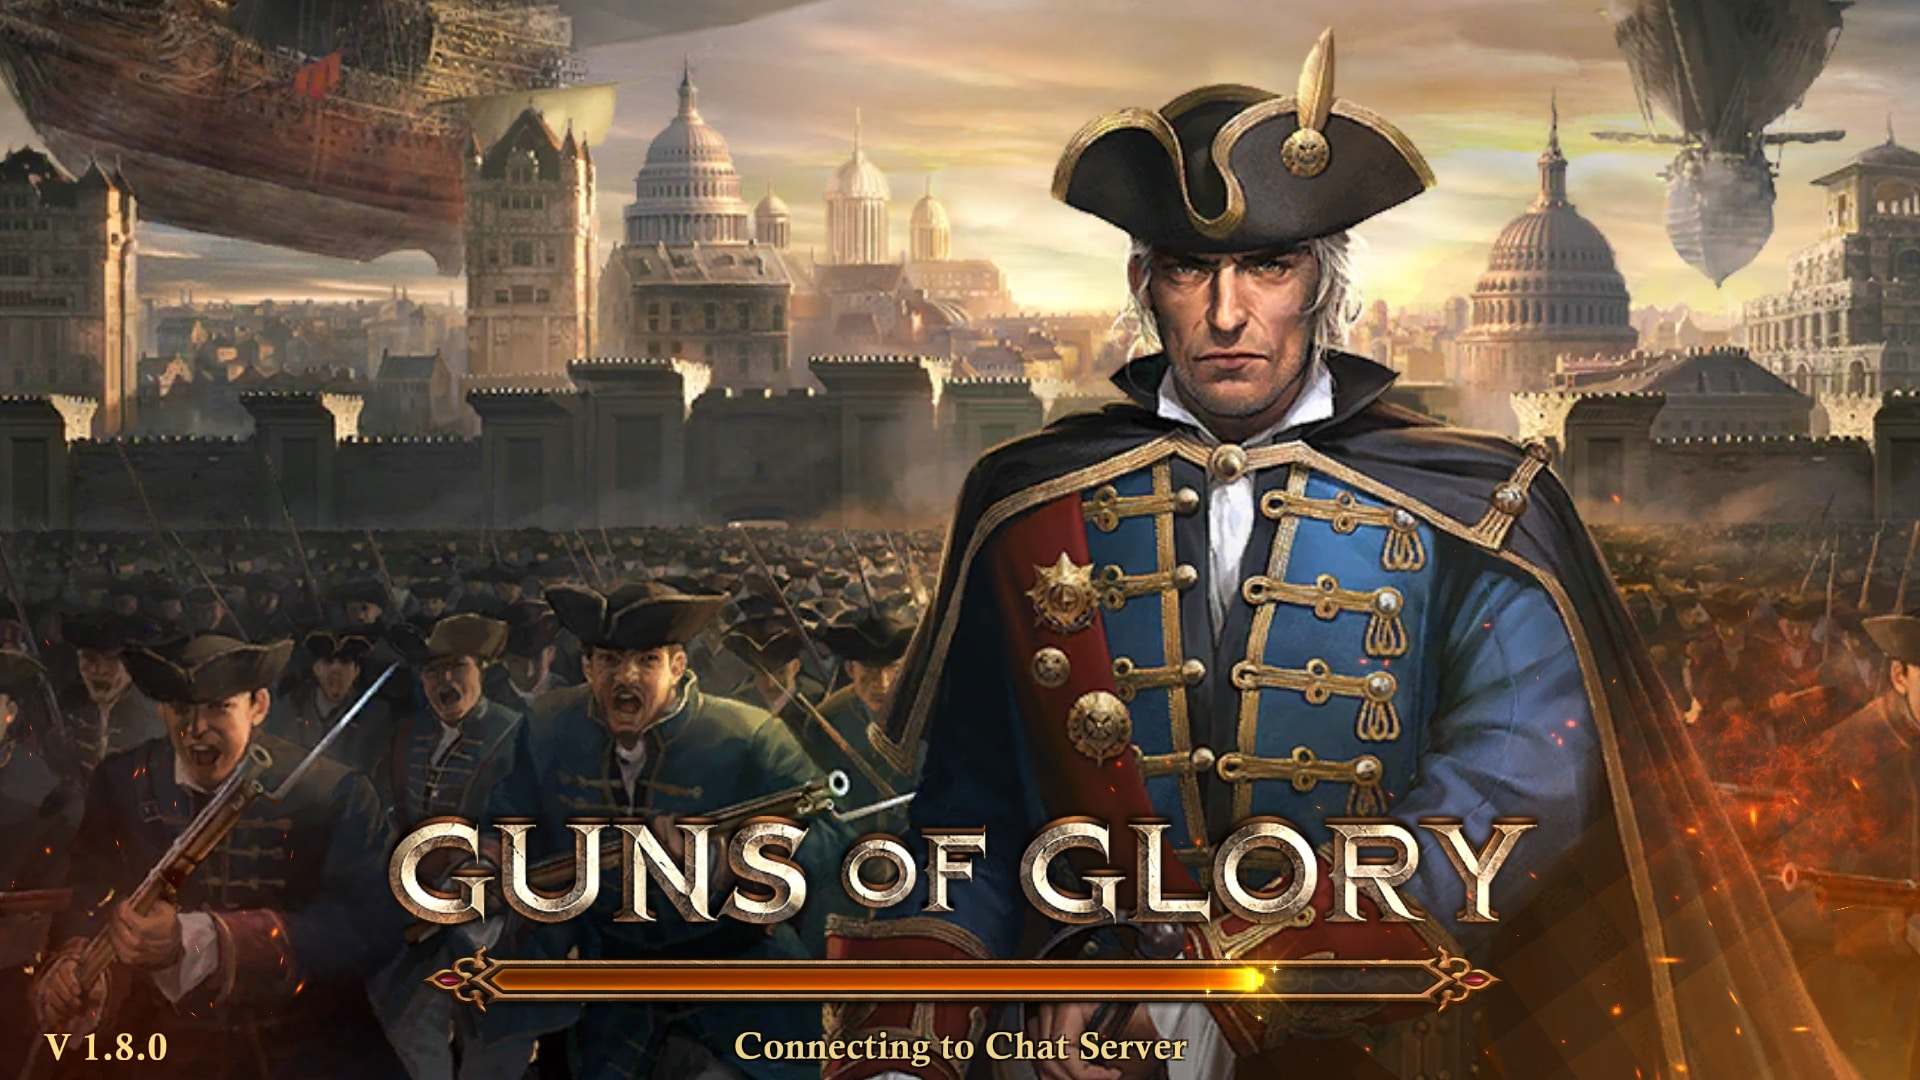 Download Guns of Glory APK- For Android and iOS 13